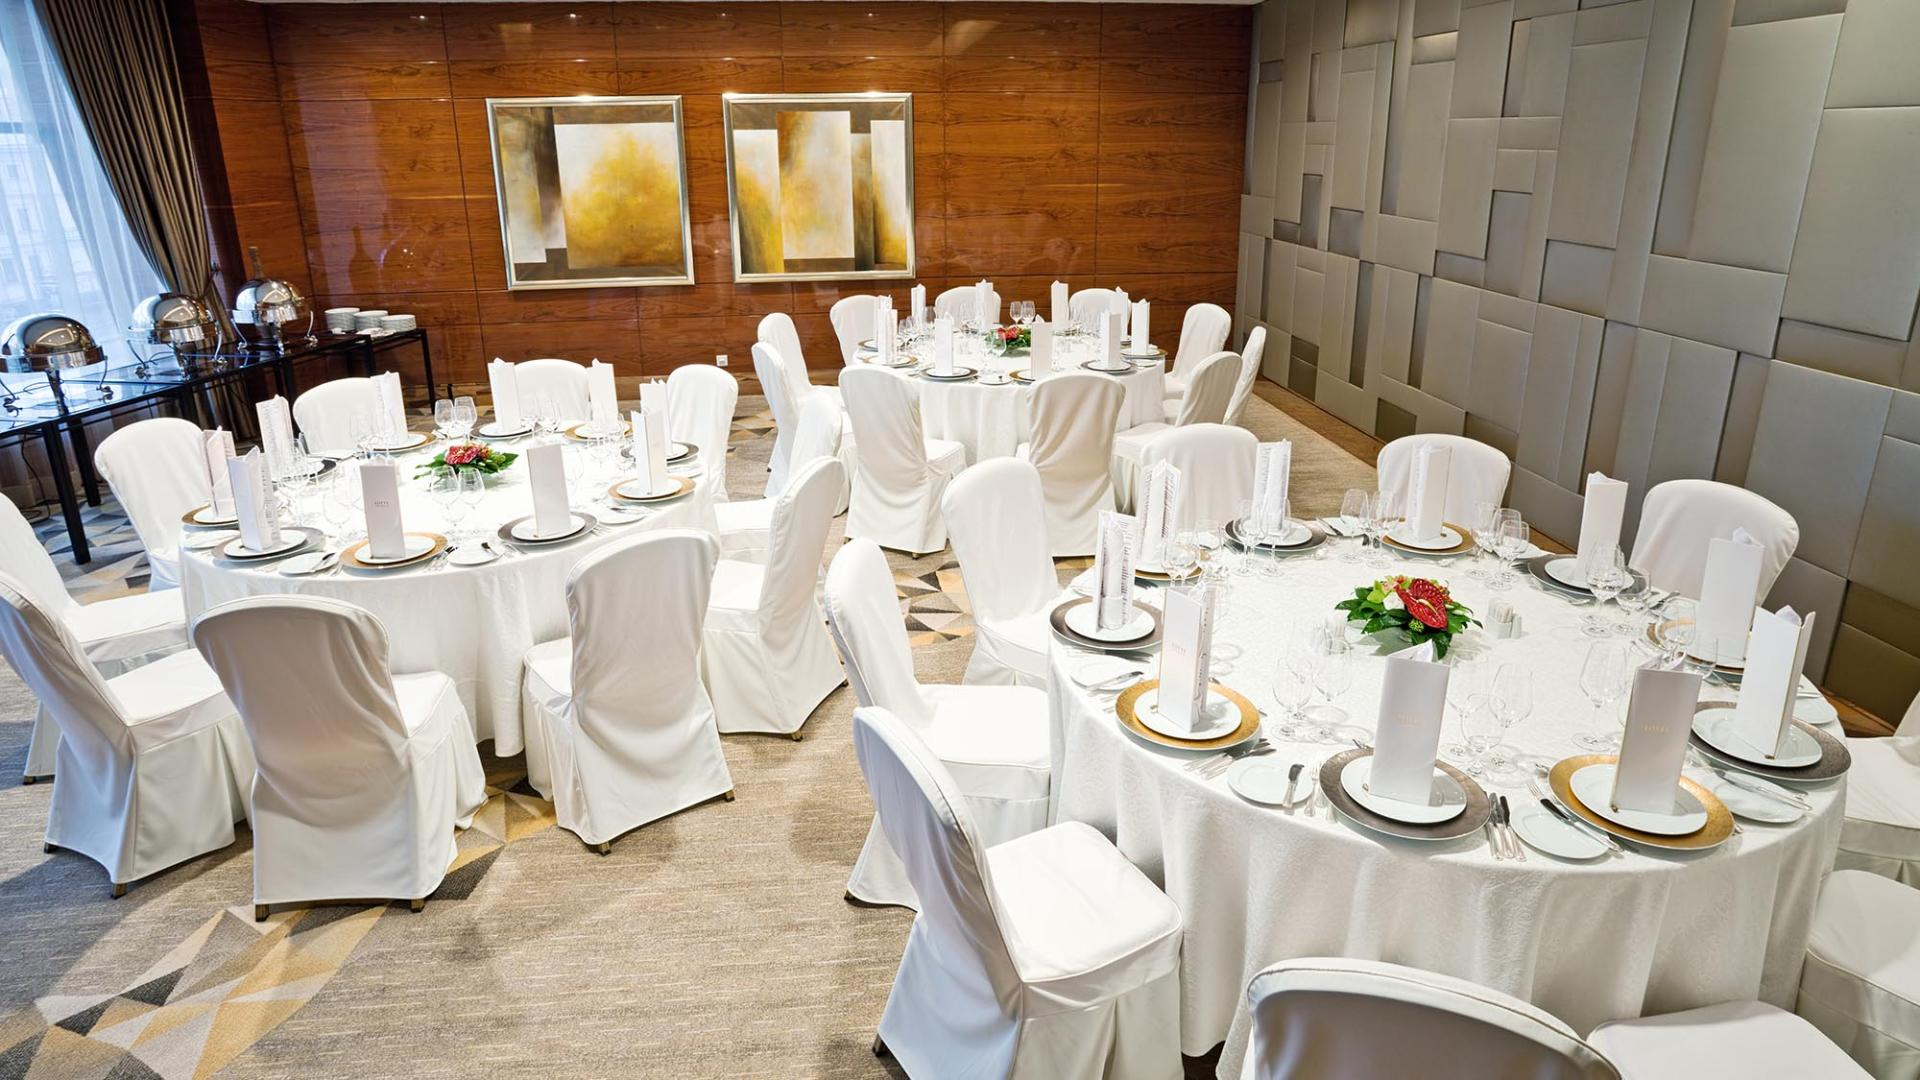 Lotte Hotel Moscow-Wedding&Conference-Hotel Conference-Anniversaries Celebration